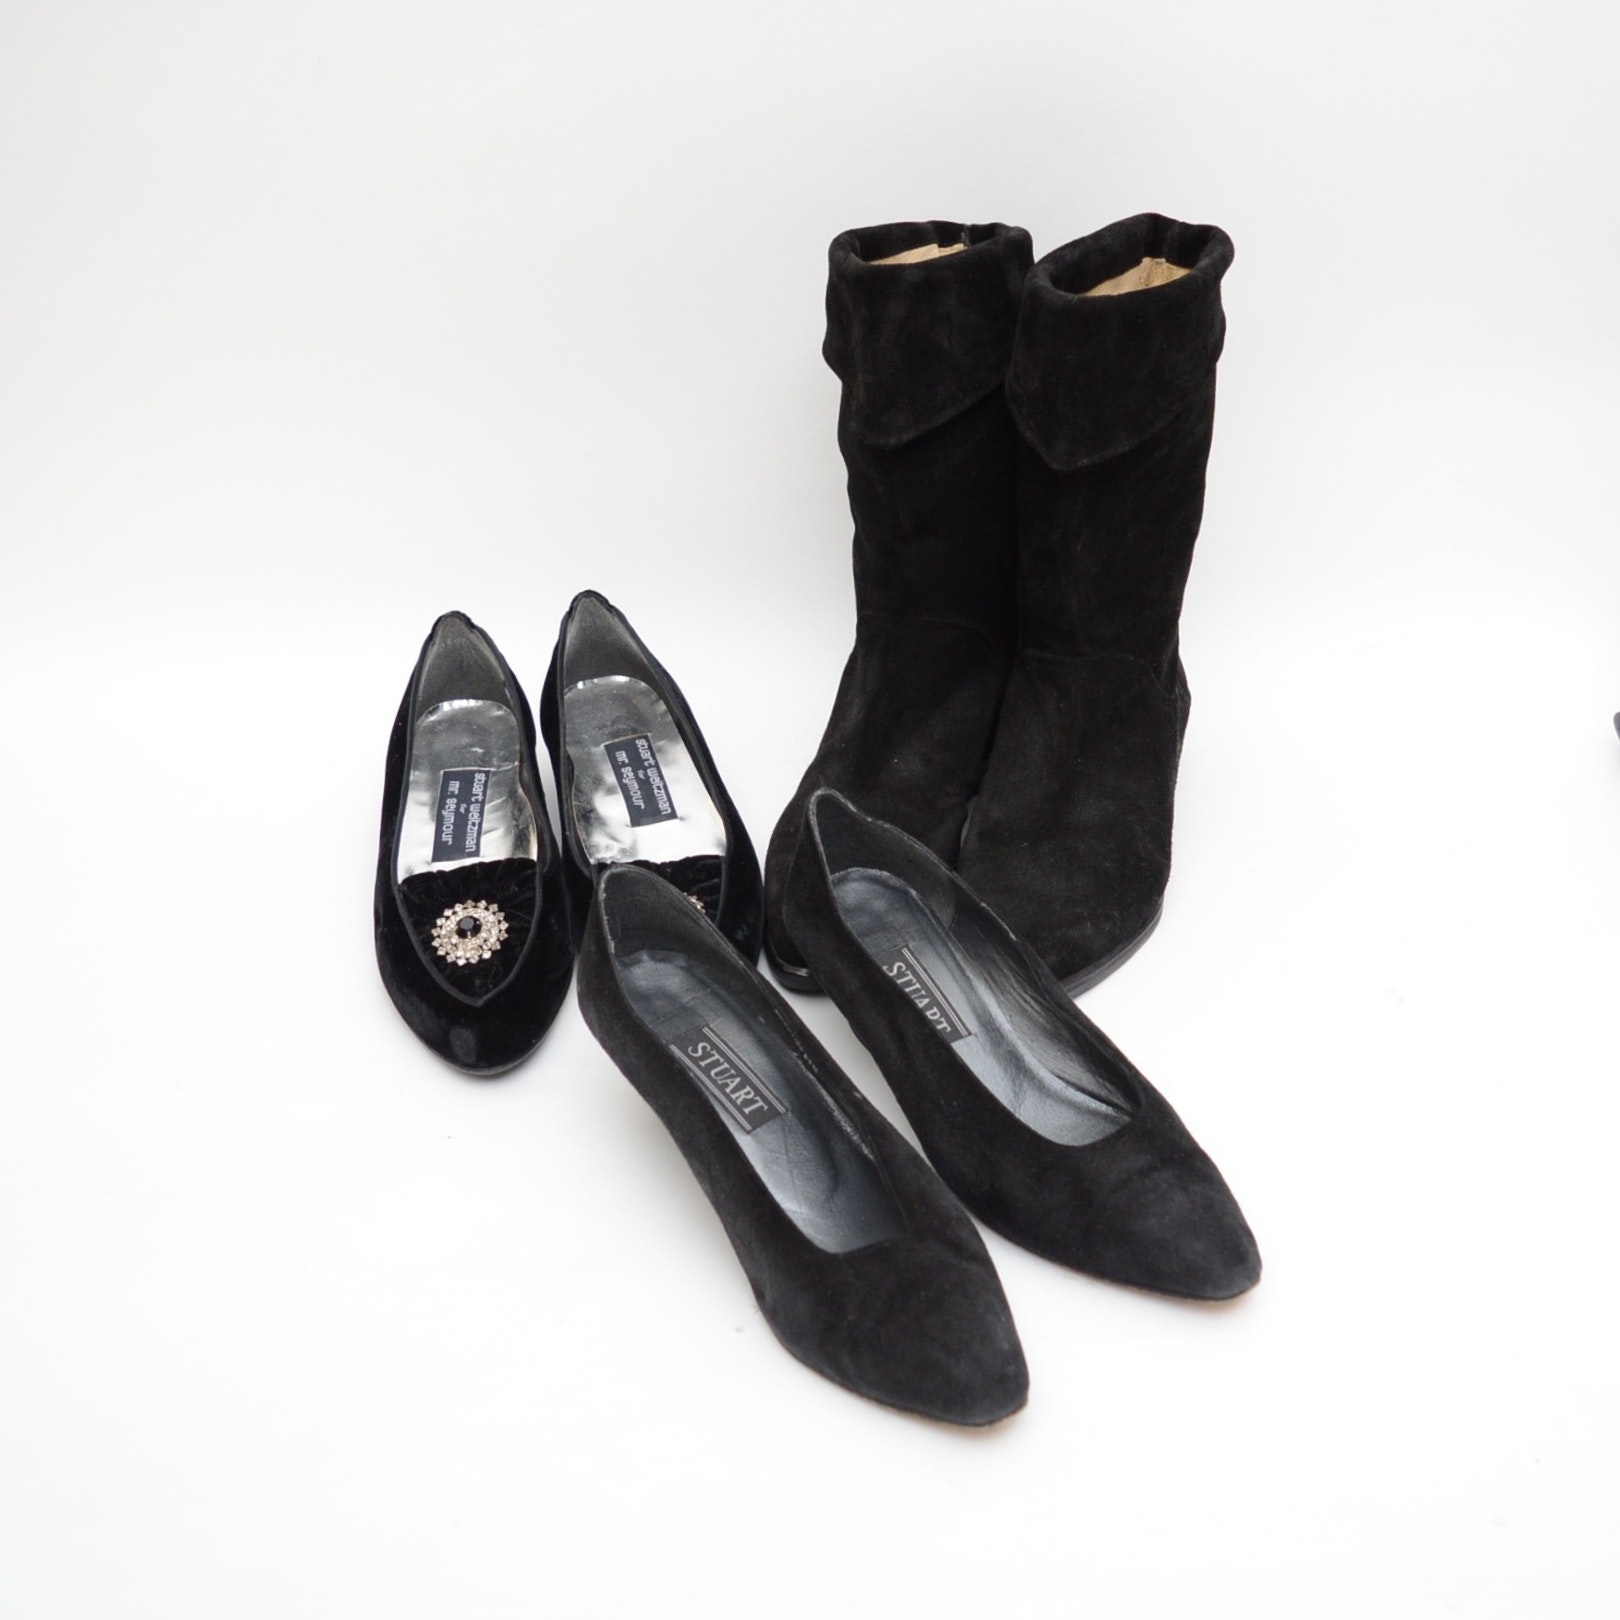 Selection of Women's Black Suede Shoes and Boots